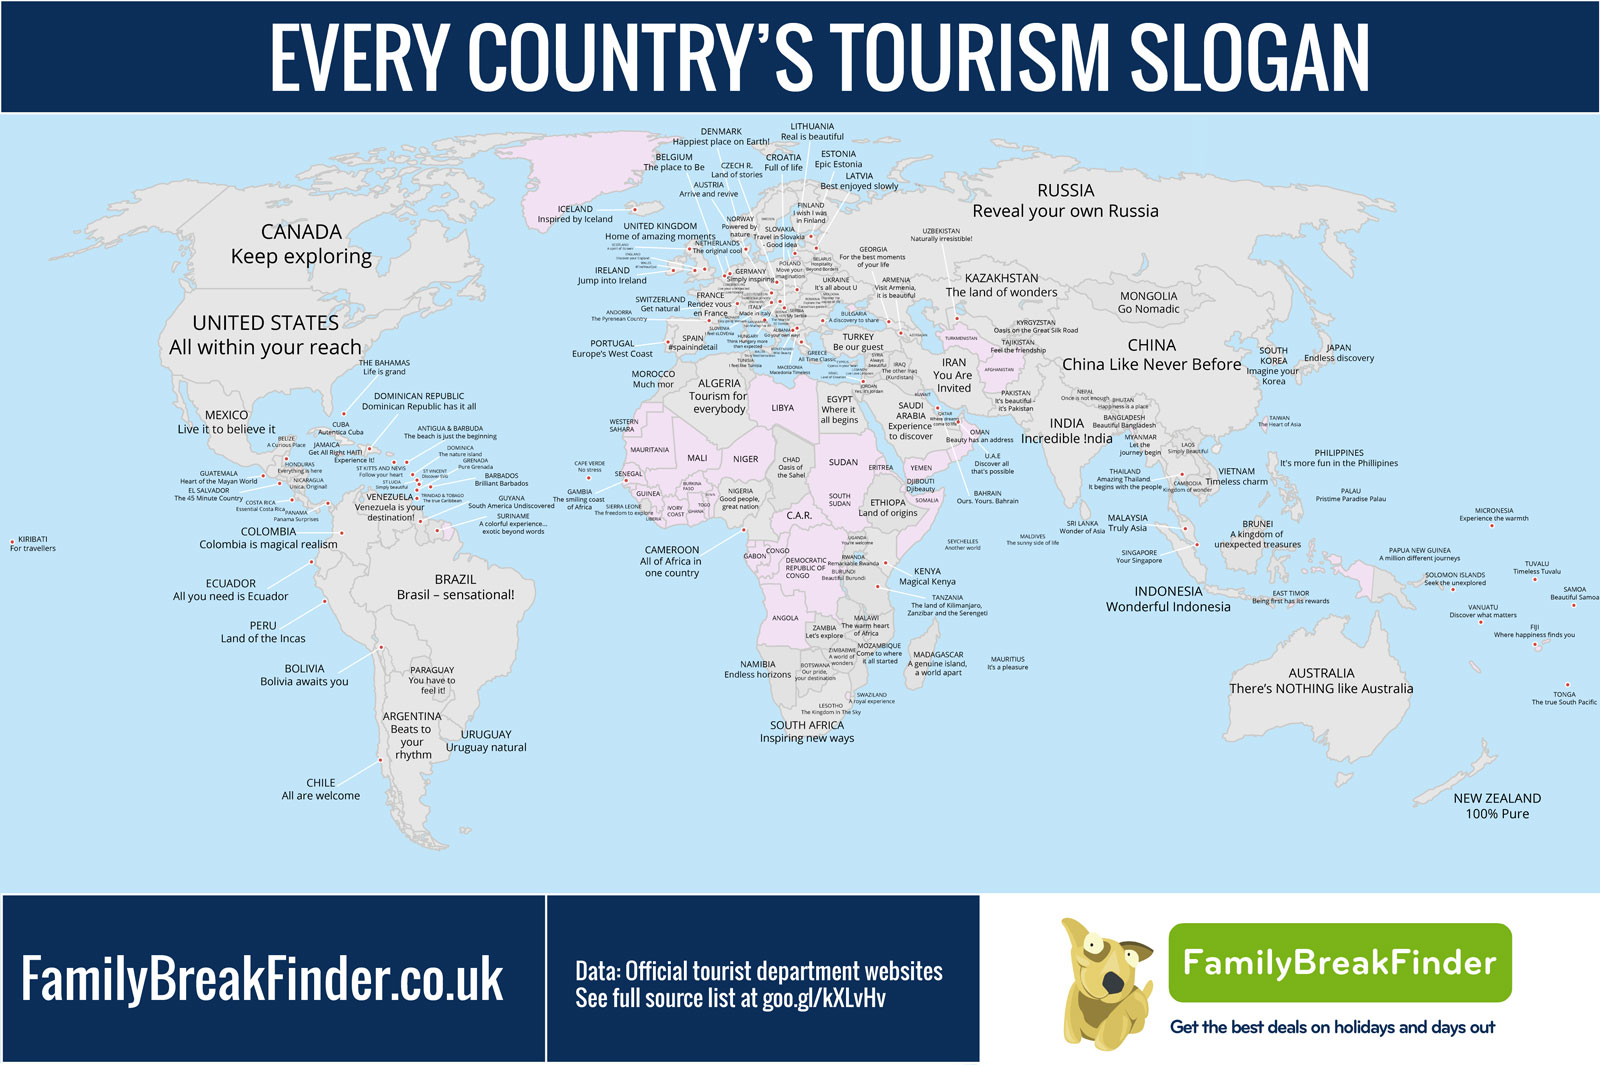 Tourism slogans for different countries